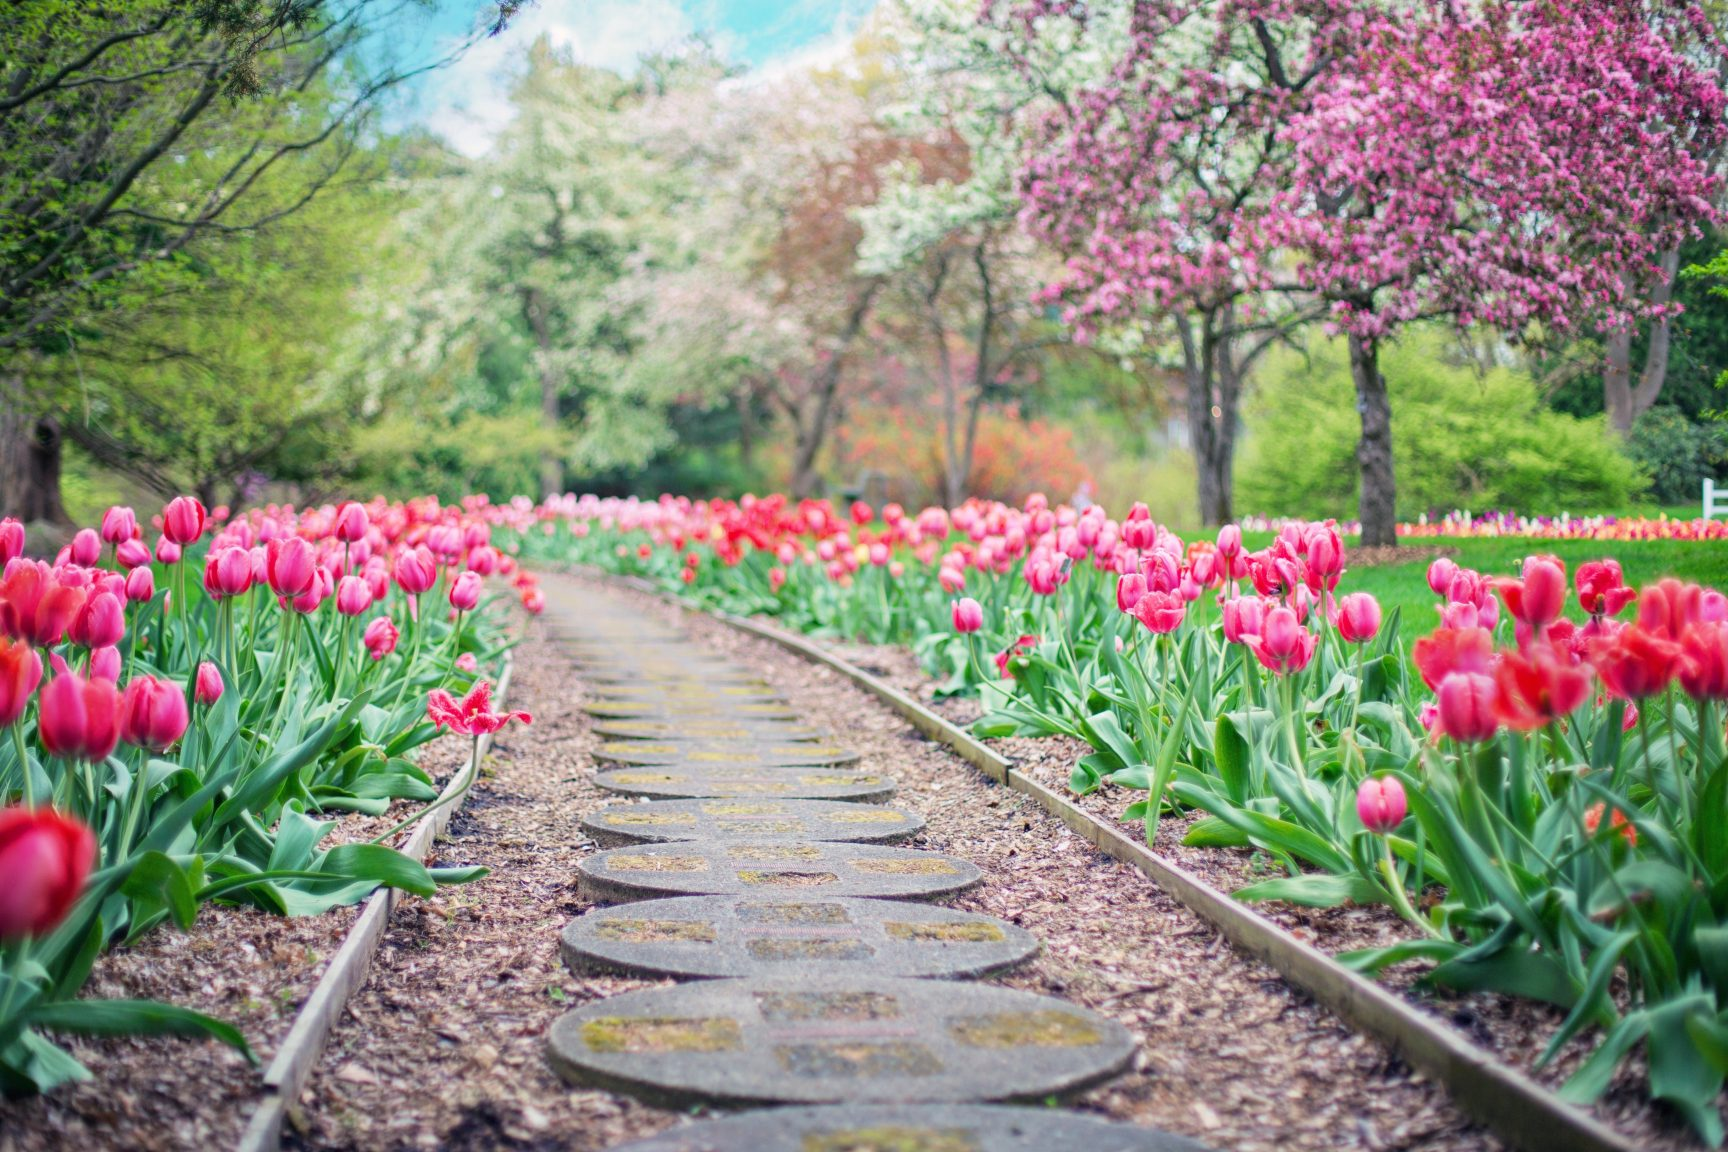 A park with a path in the middle of the photo, pink tulips border the path.